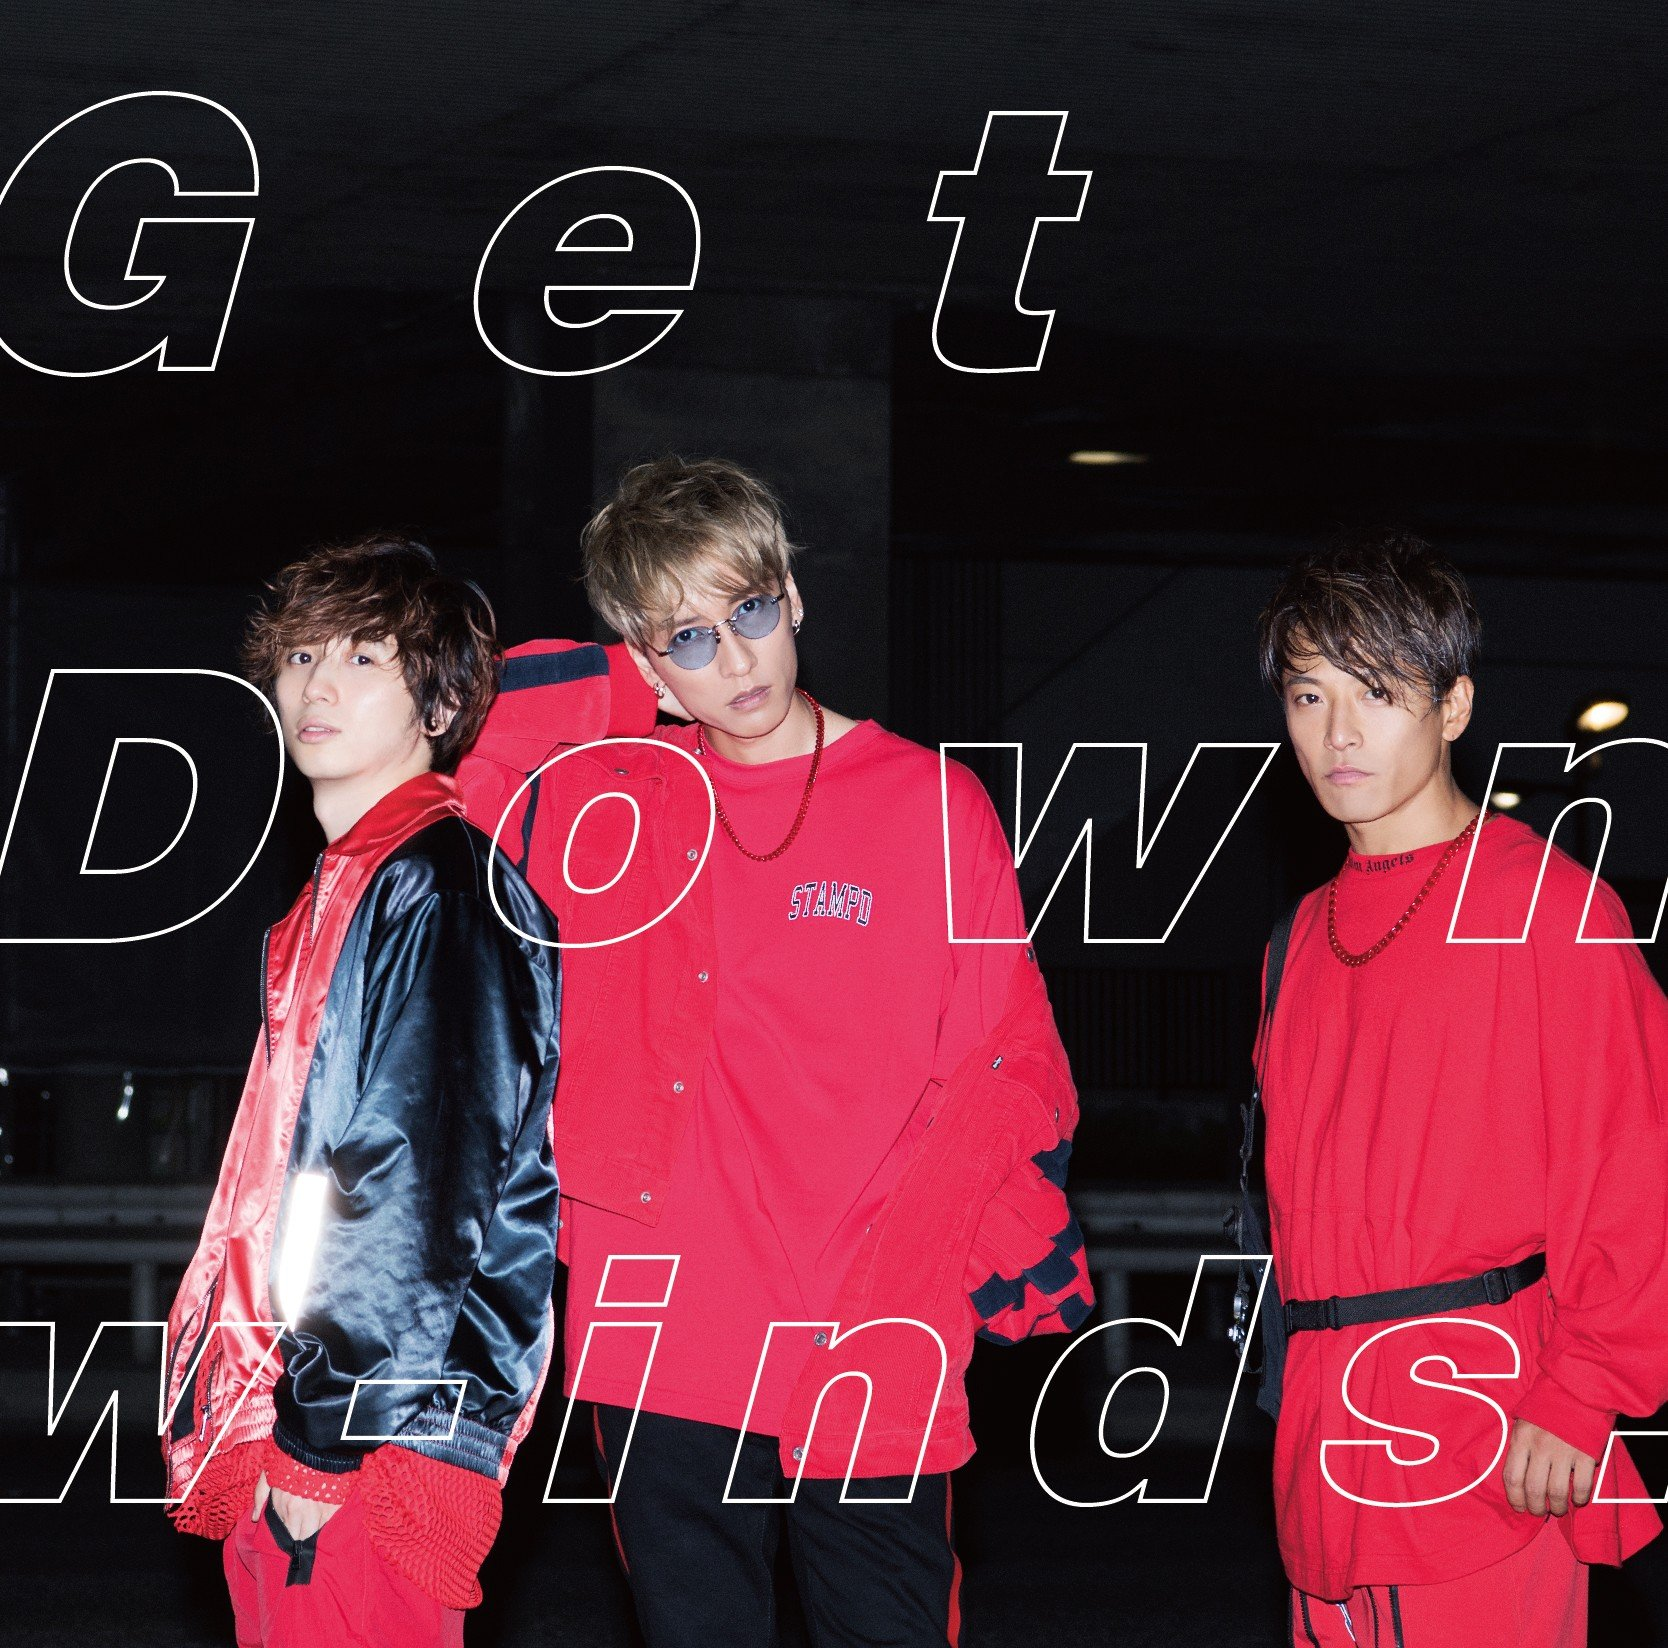 w-inds. – Get Down [FLAC / WEB] [2019.07.31]